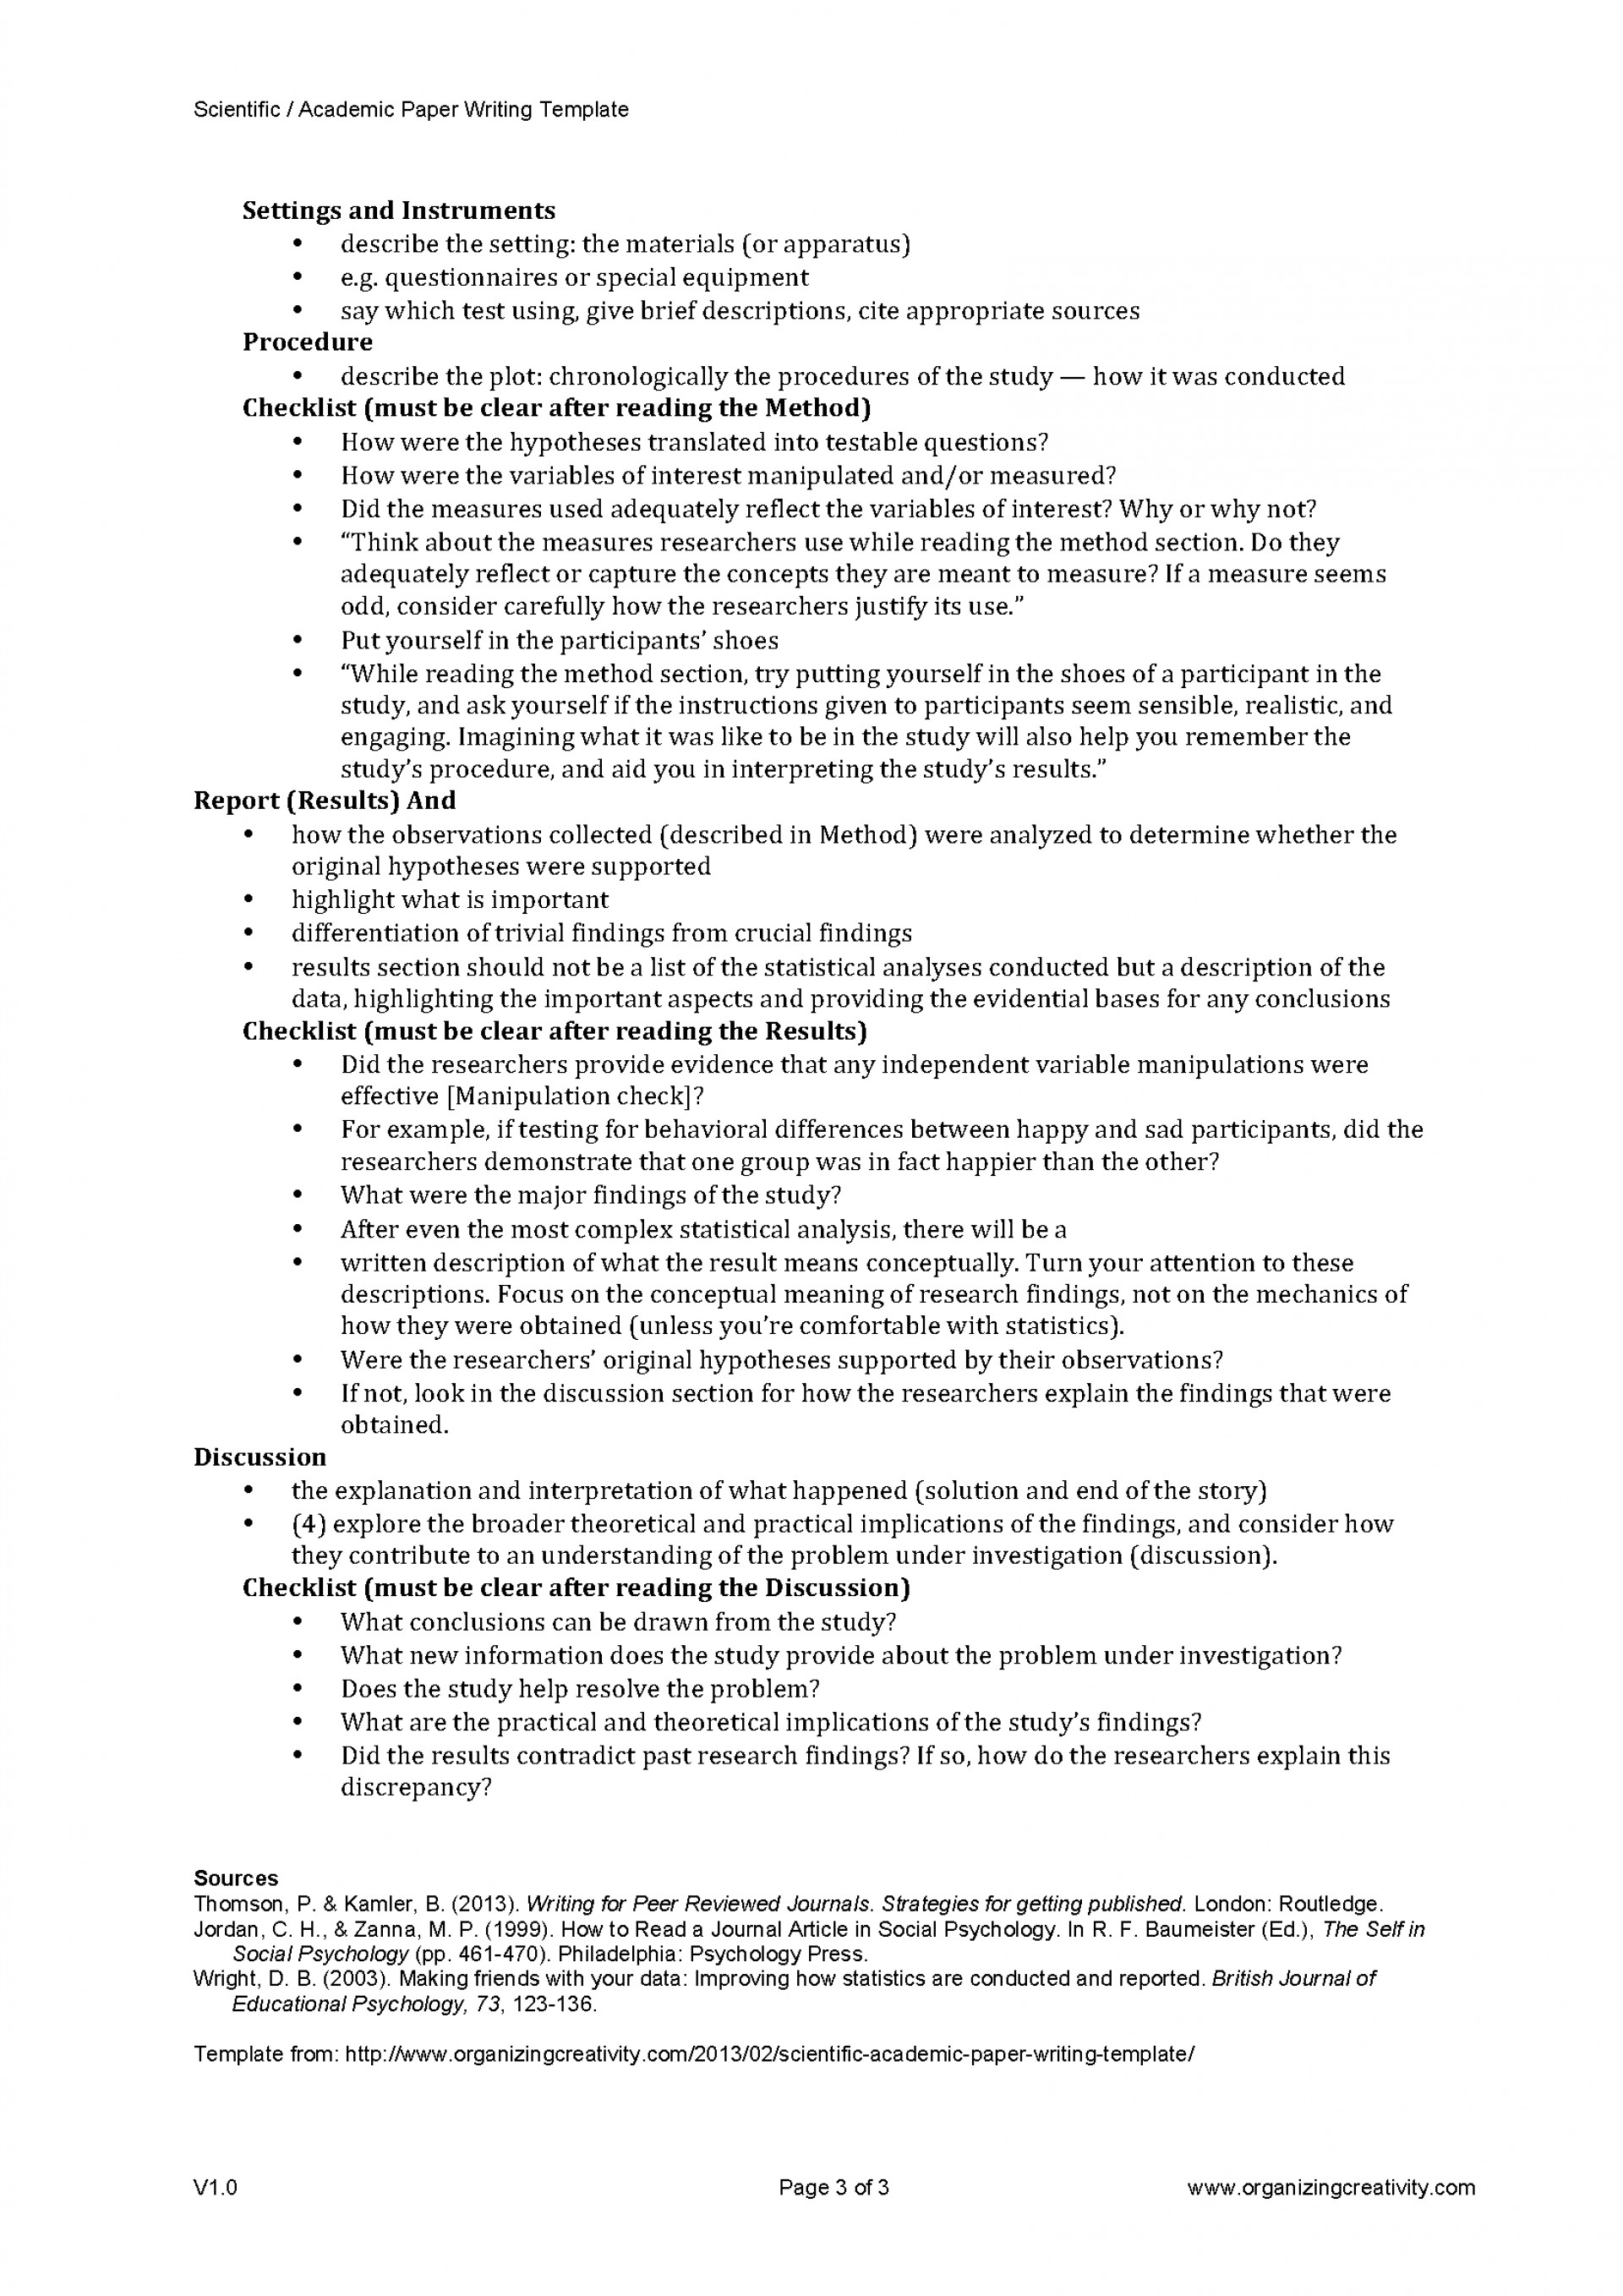 013 Research Paper Scientific Academic Writing Template Page 3 Methods Unique Outline Method 1920